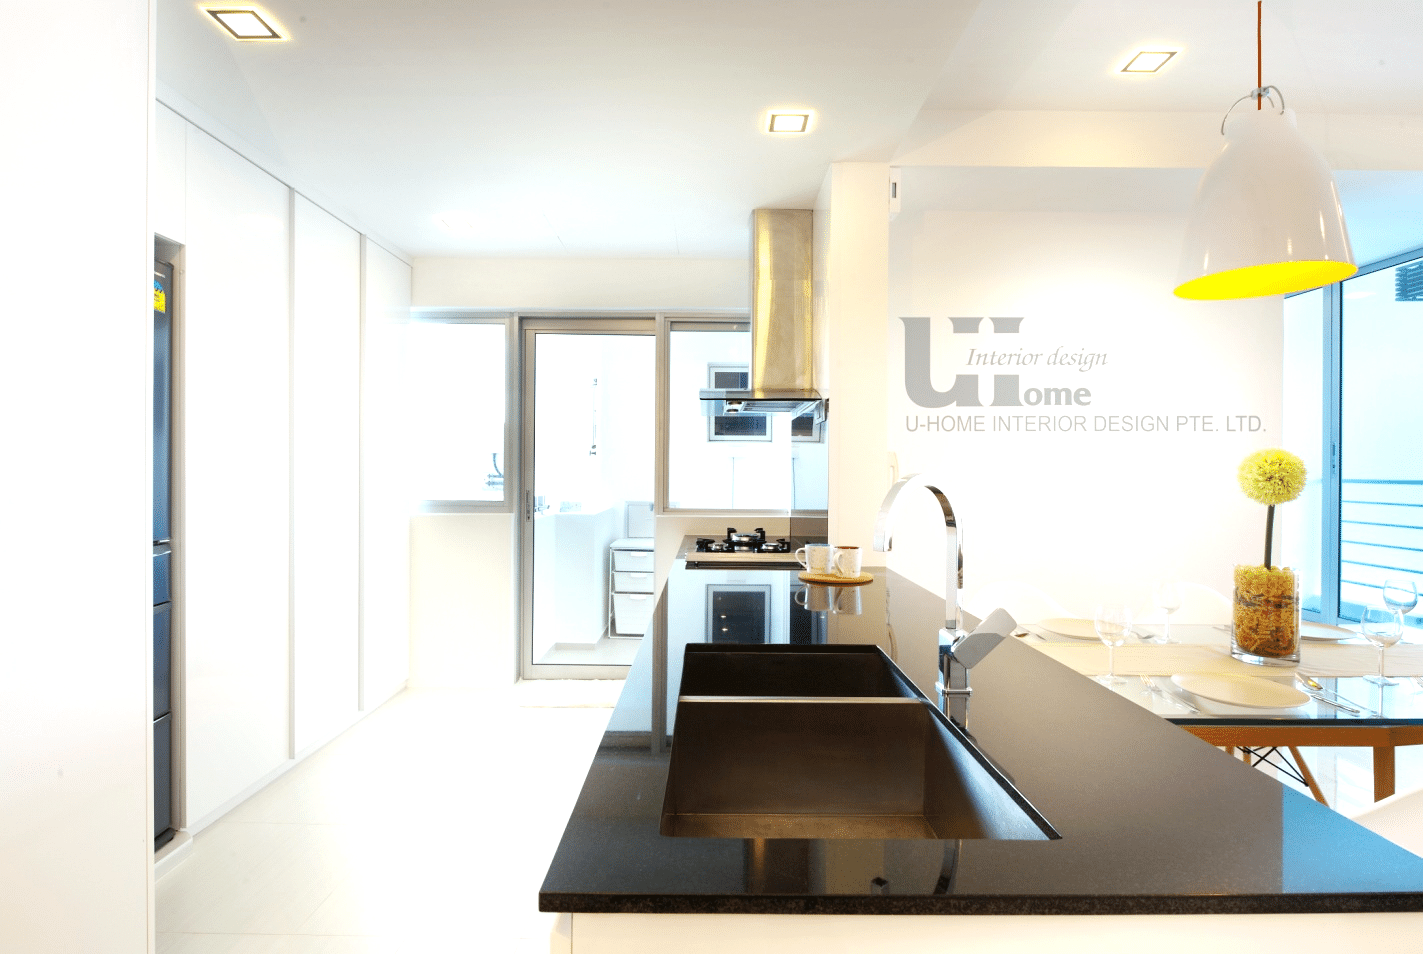 Amazing countertops for beautiful kitchen for Interior designs ne ltd